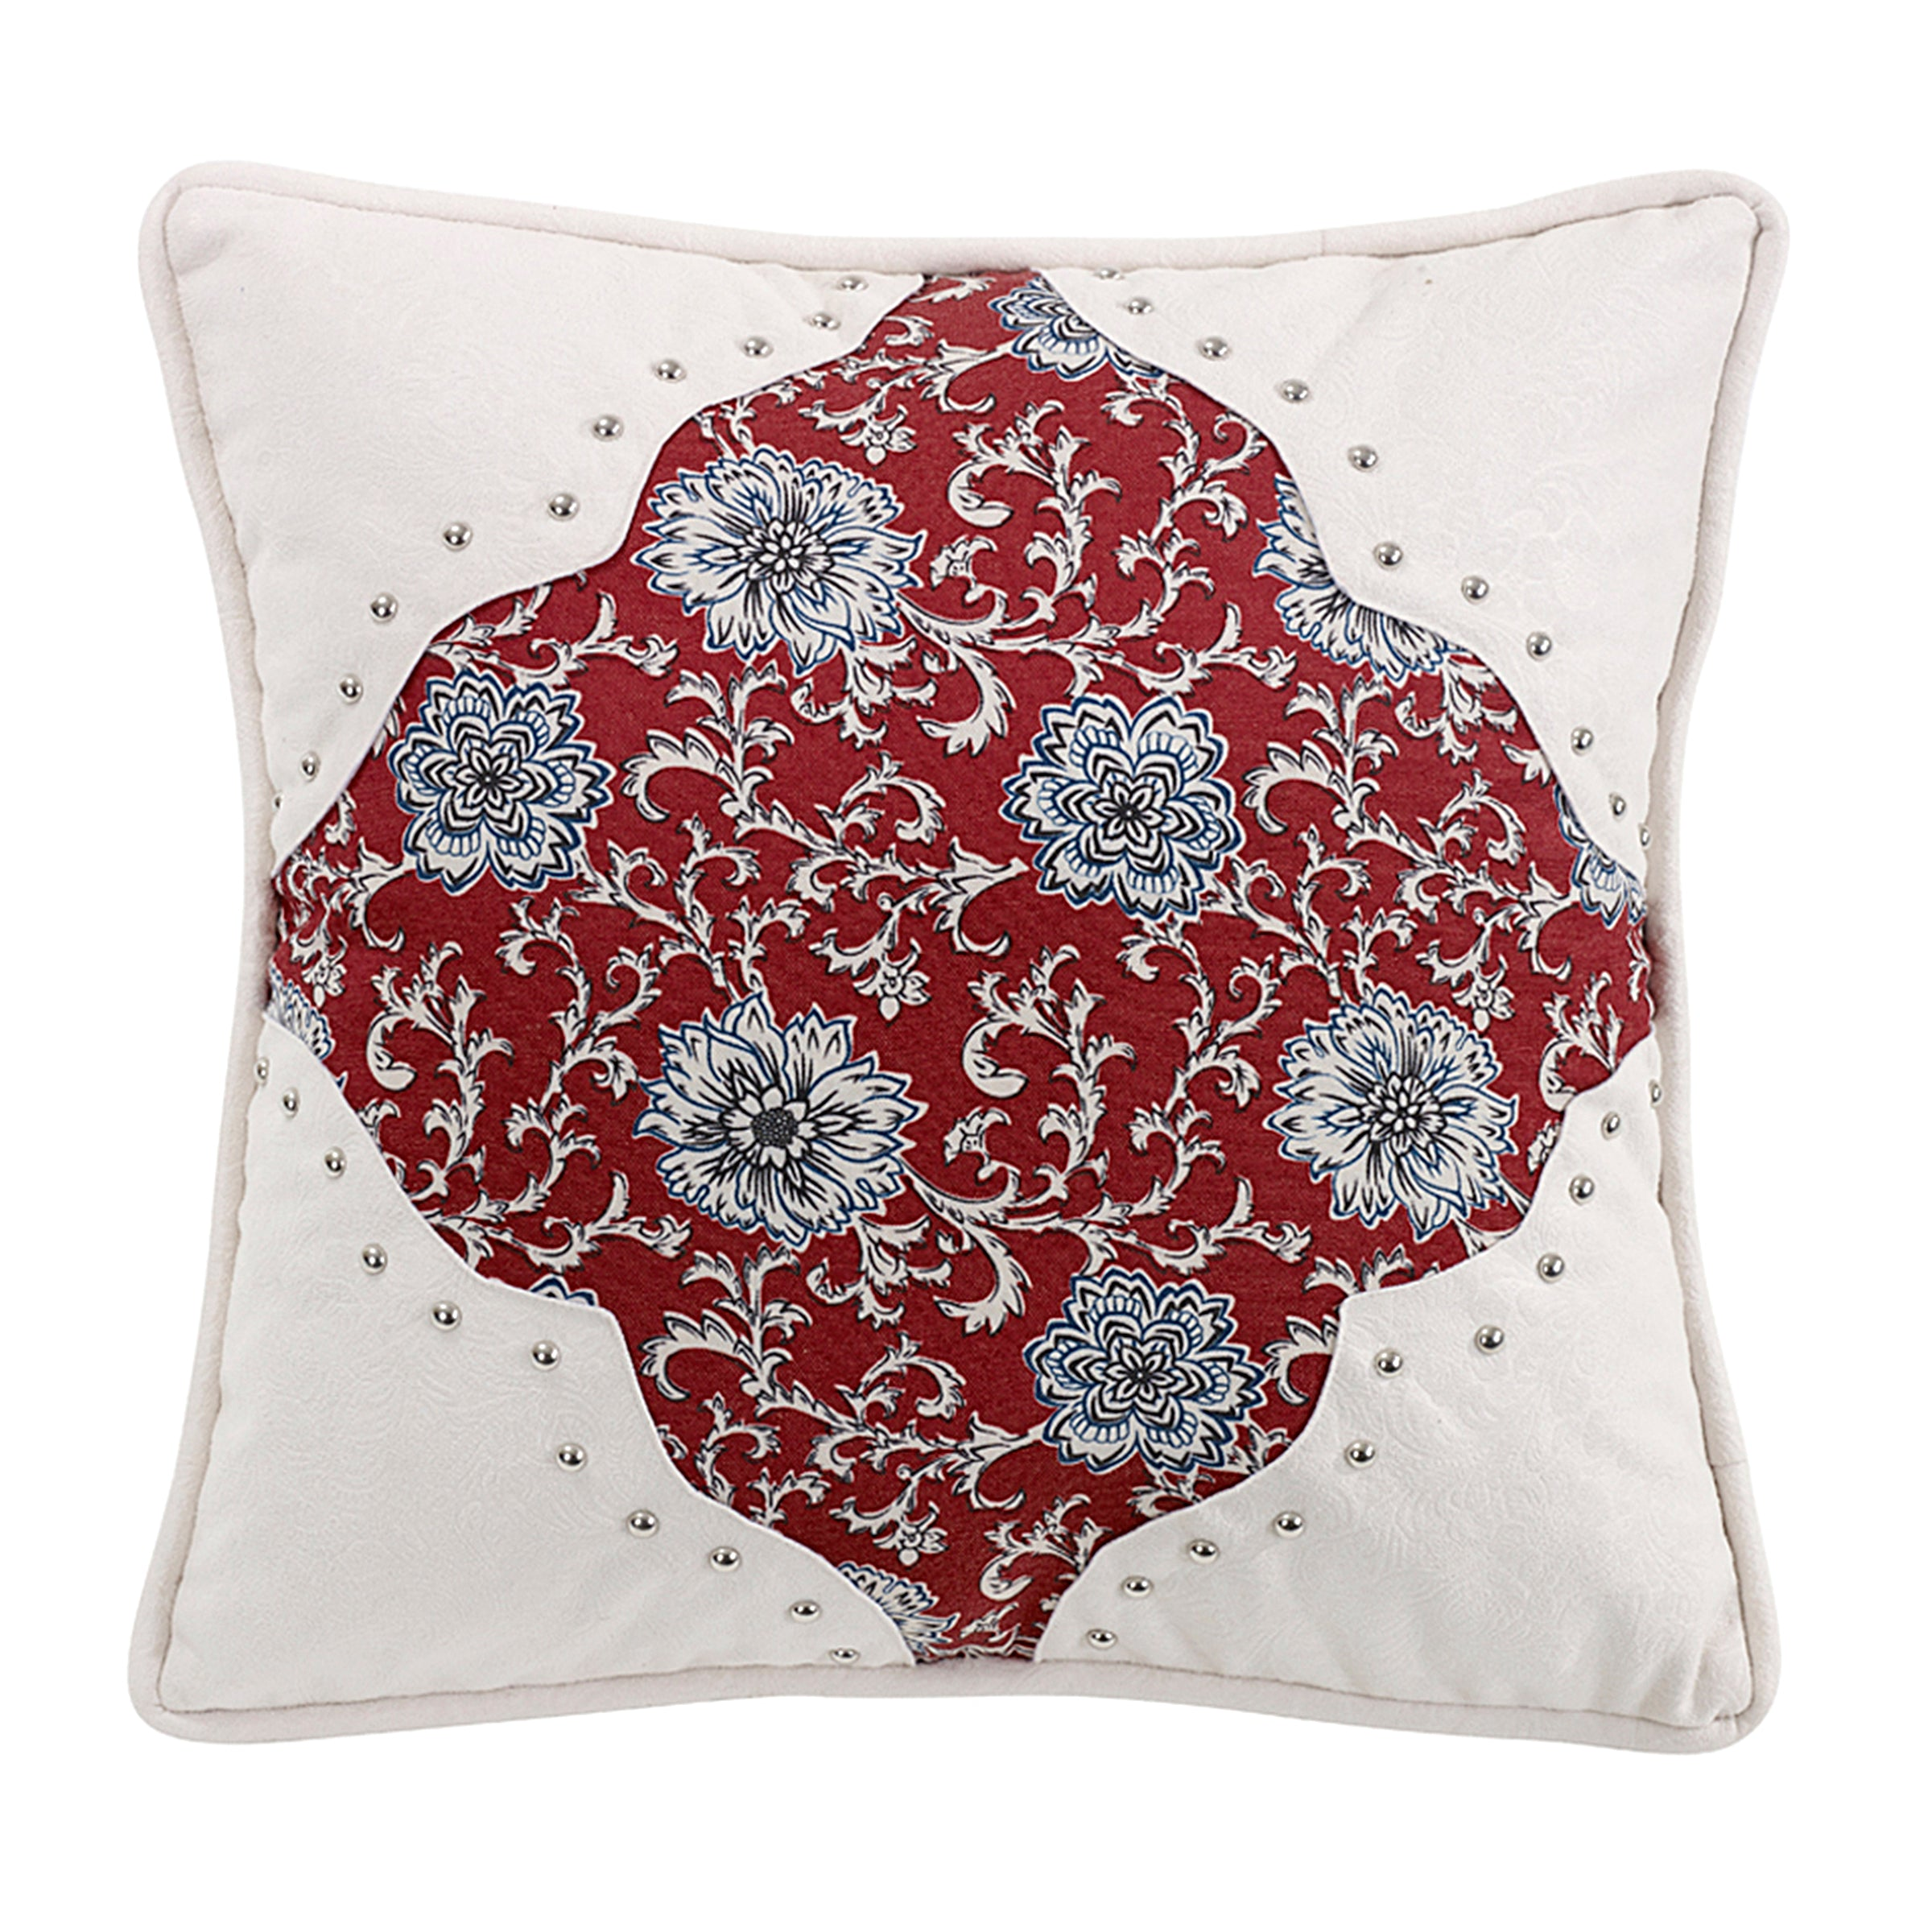 WS4011P1  Bandera Floral pillow with scalloped corners